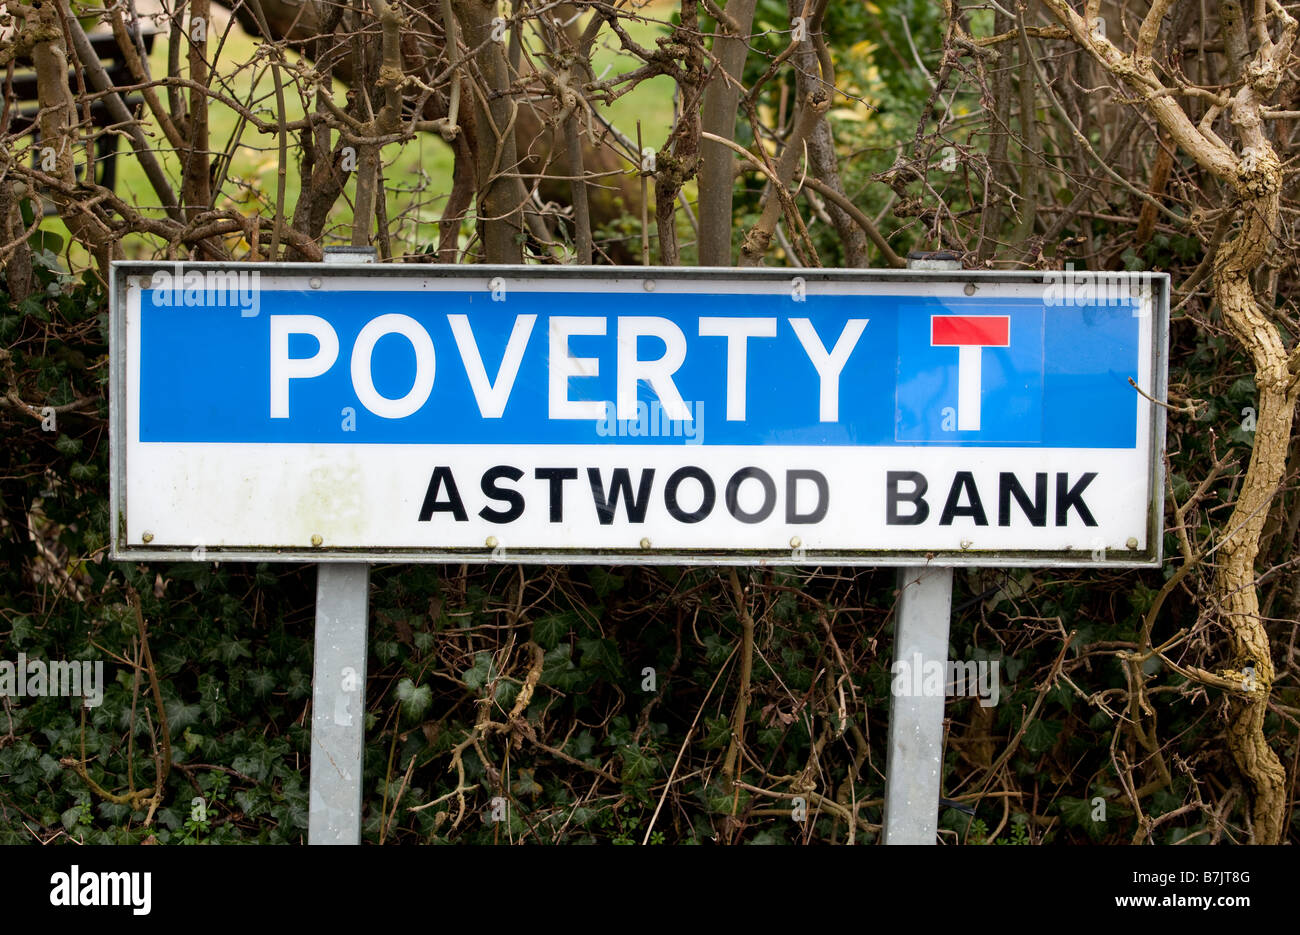 A road called Poverty in the Worcestershire village of Astwood Bank England UK - Stock Image